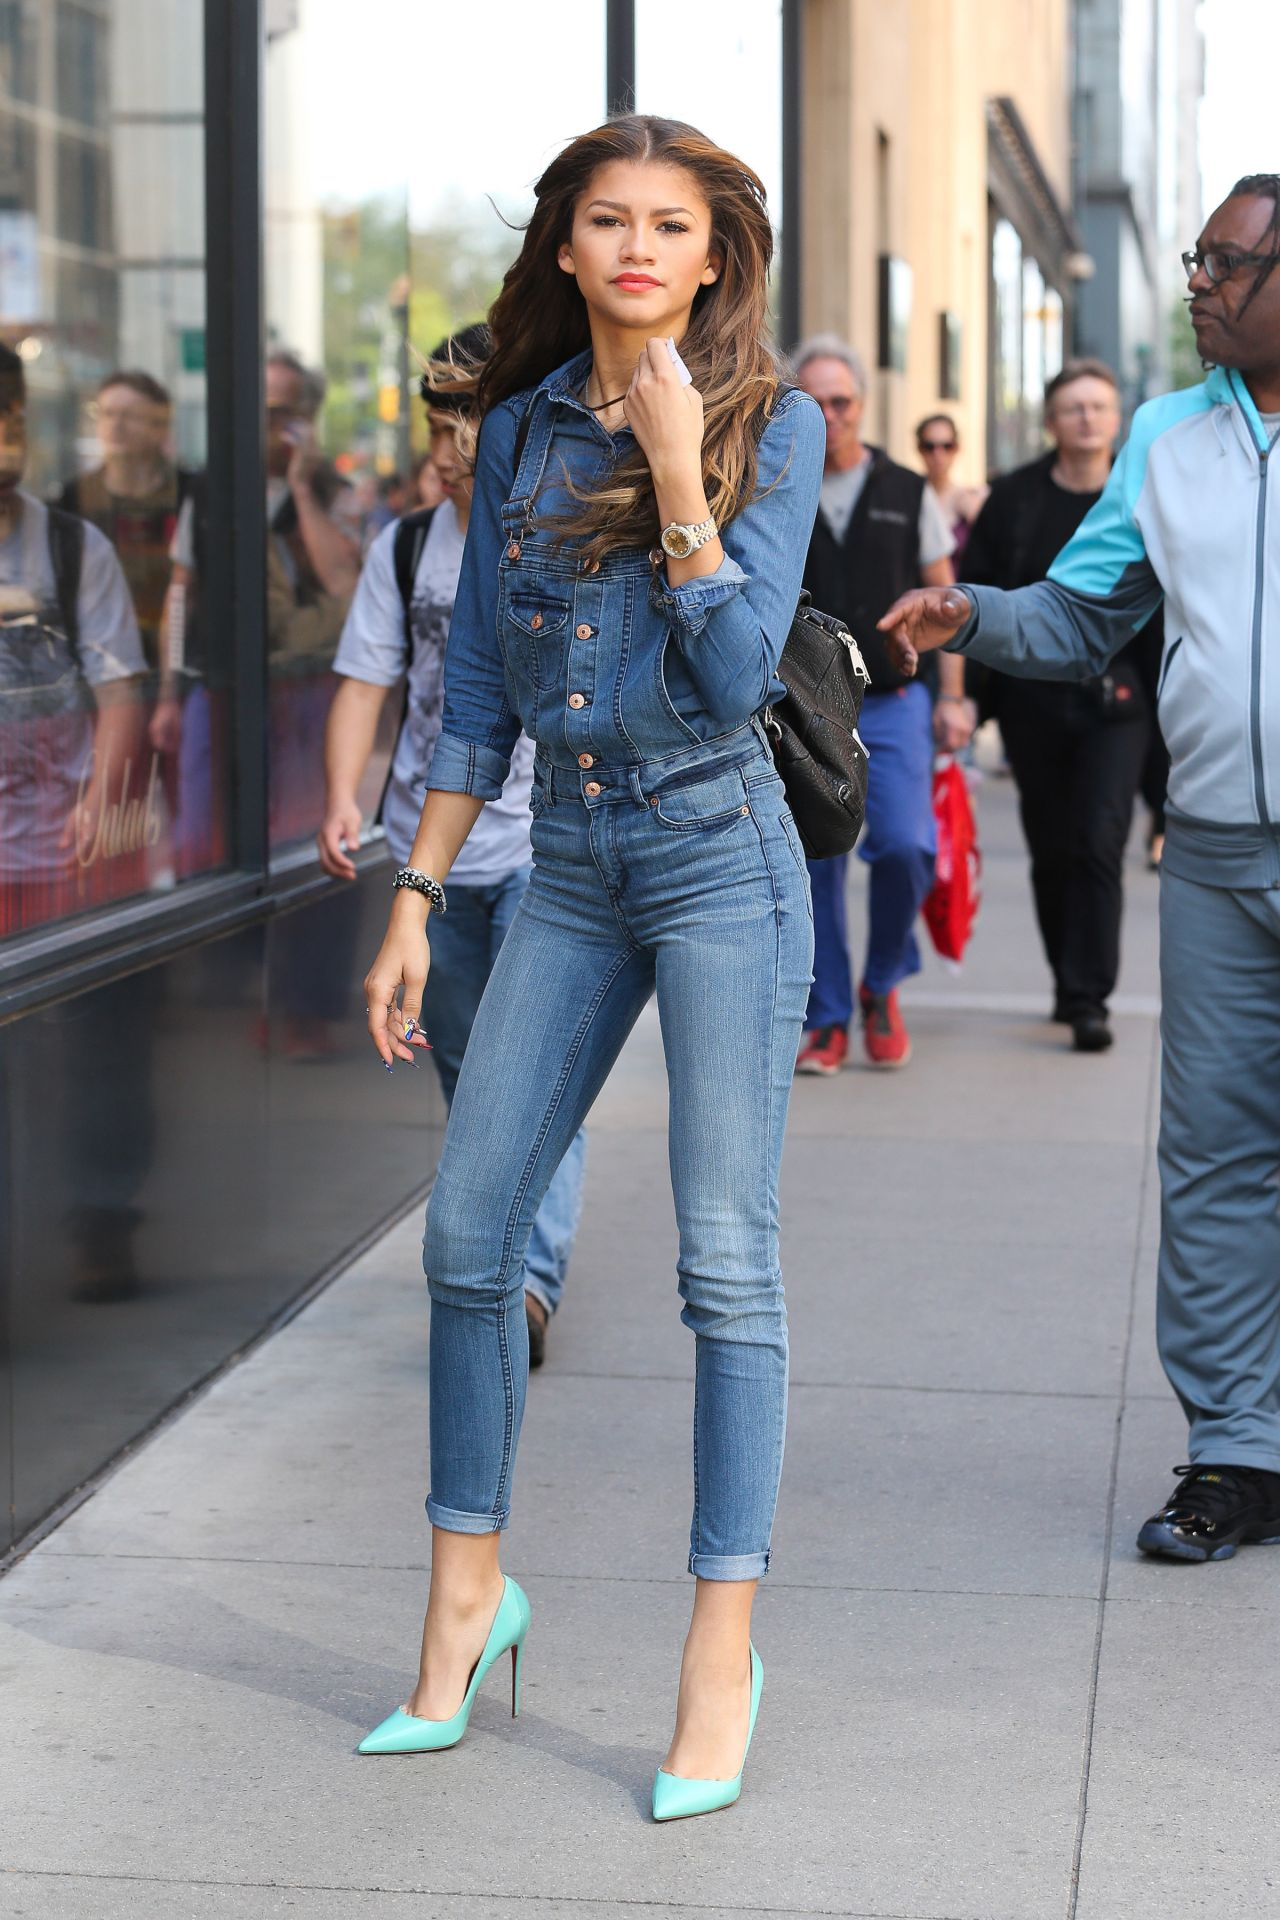 zendaya coleman wearing jeans  out in new york city  may